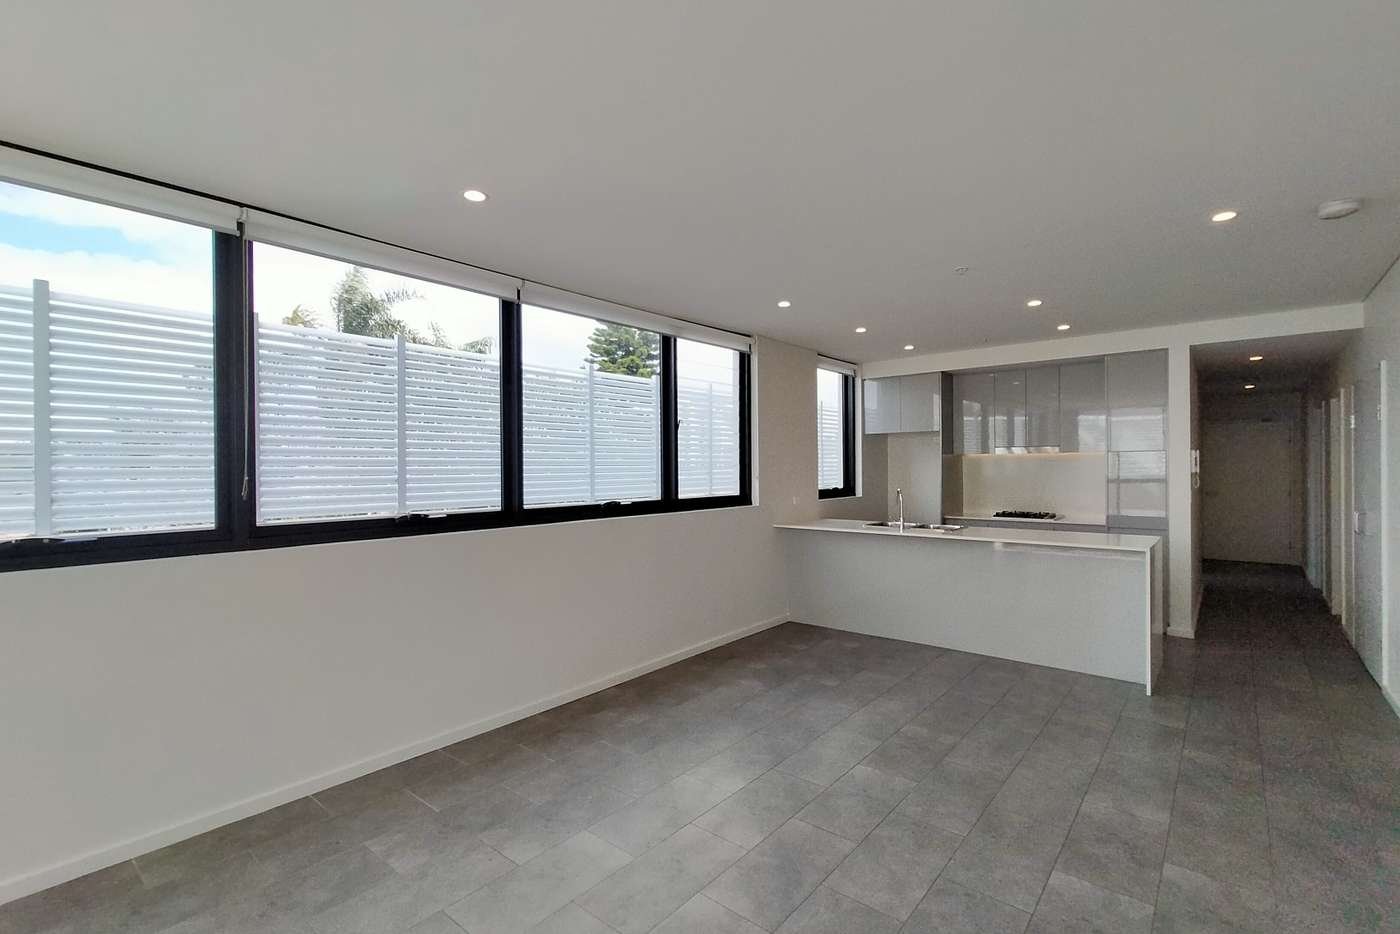 Main view of Homely apartment listing, 114/581 Gardeners Road, Mascot NSW 2020